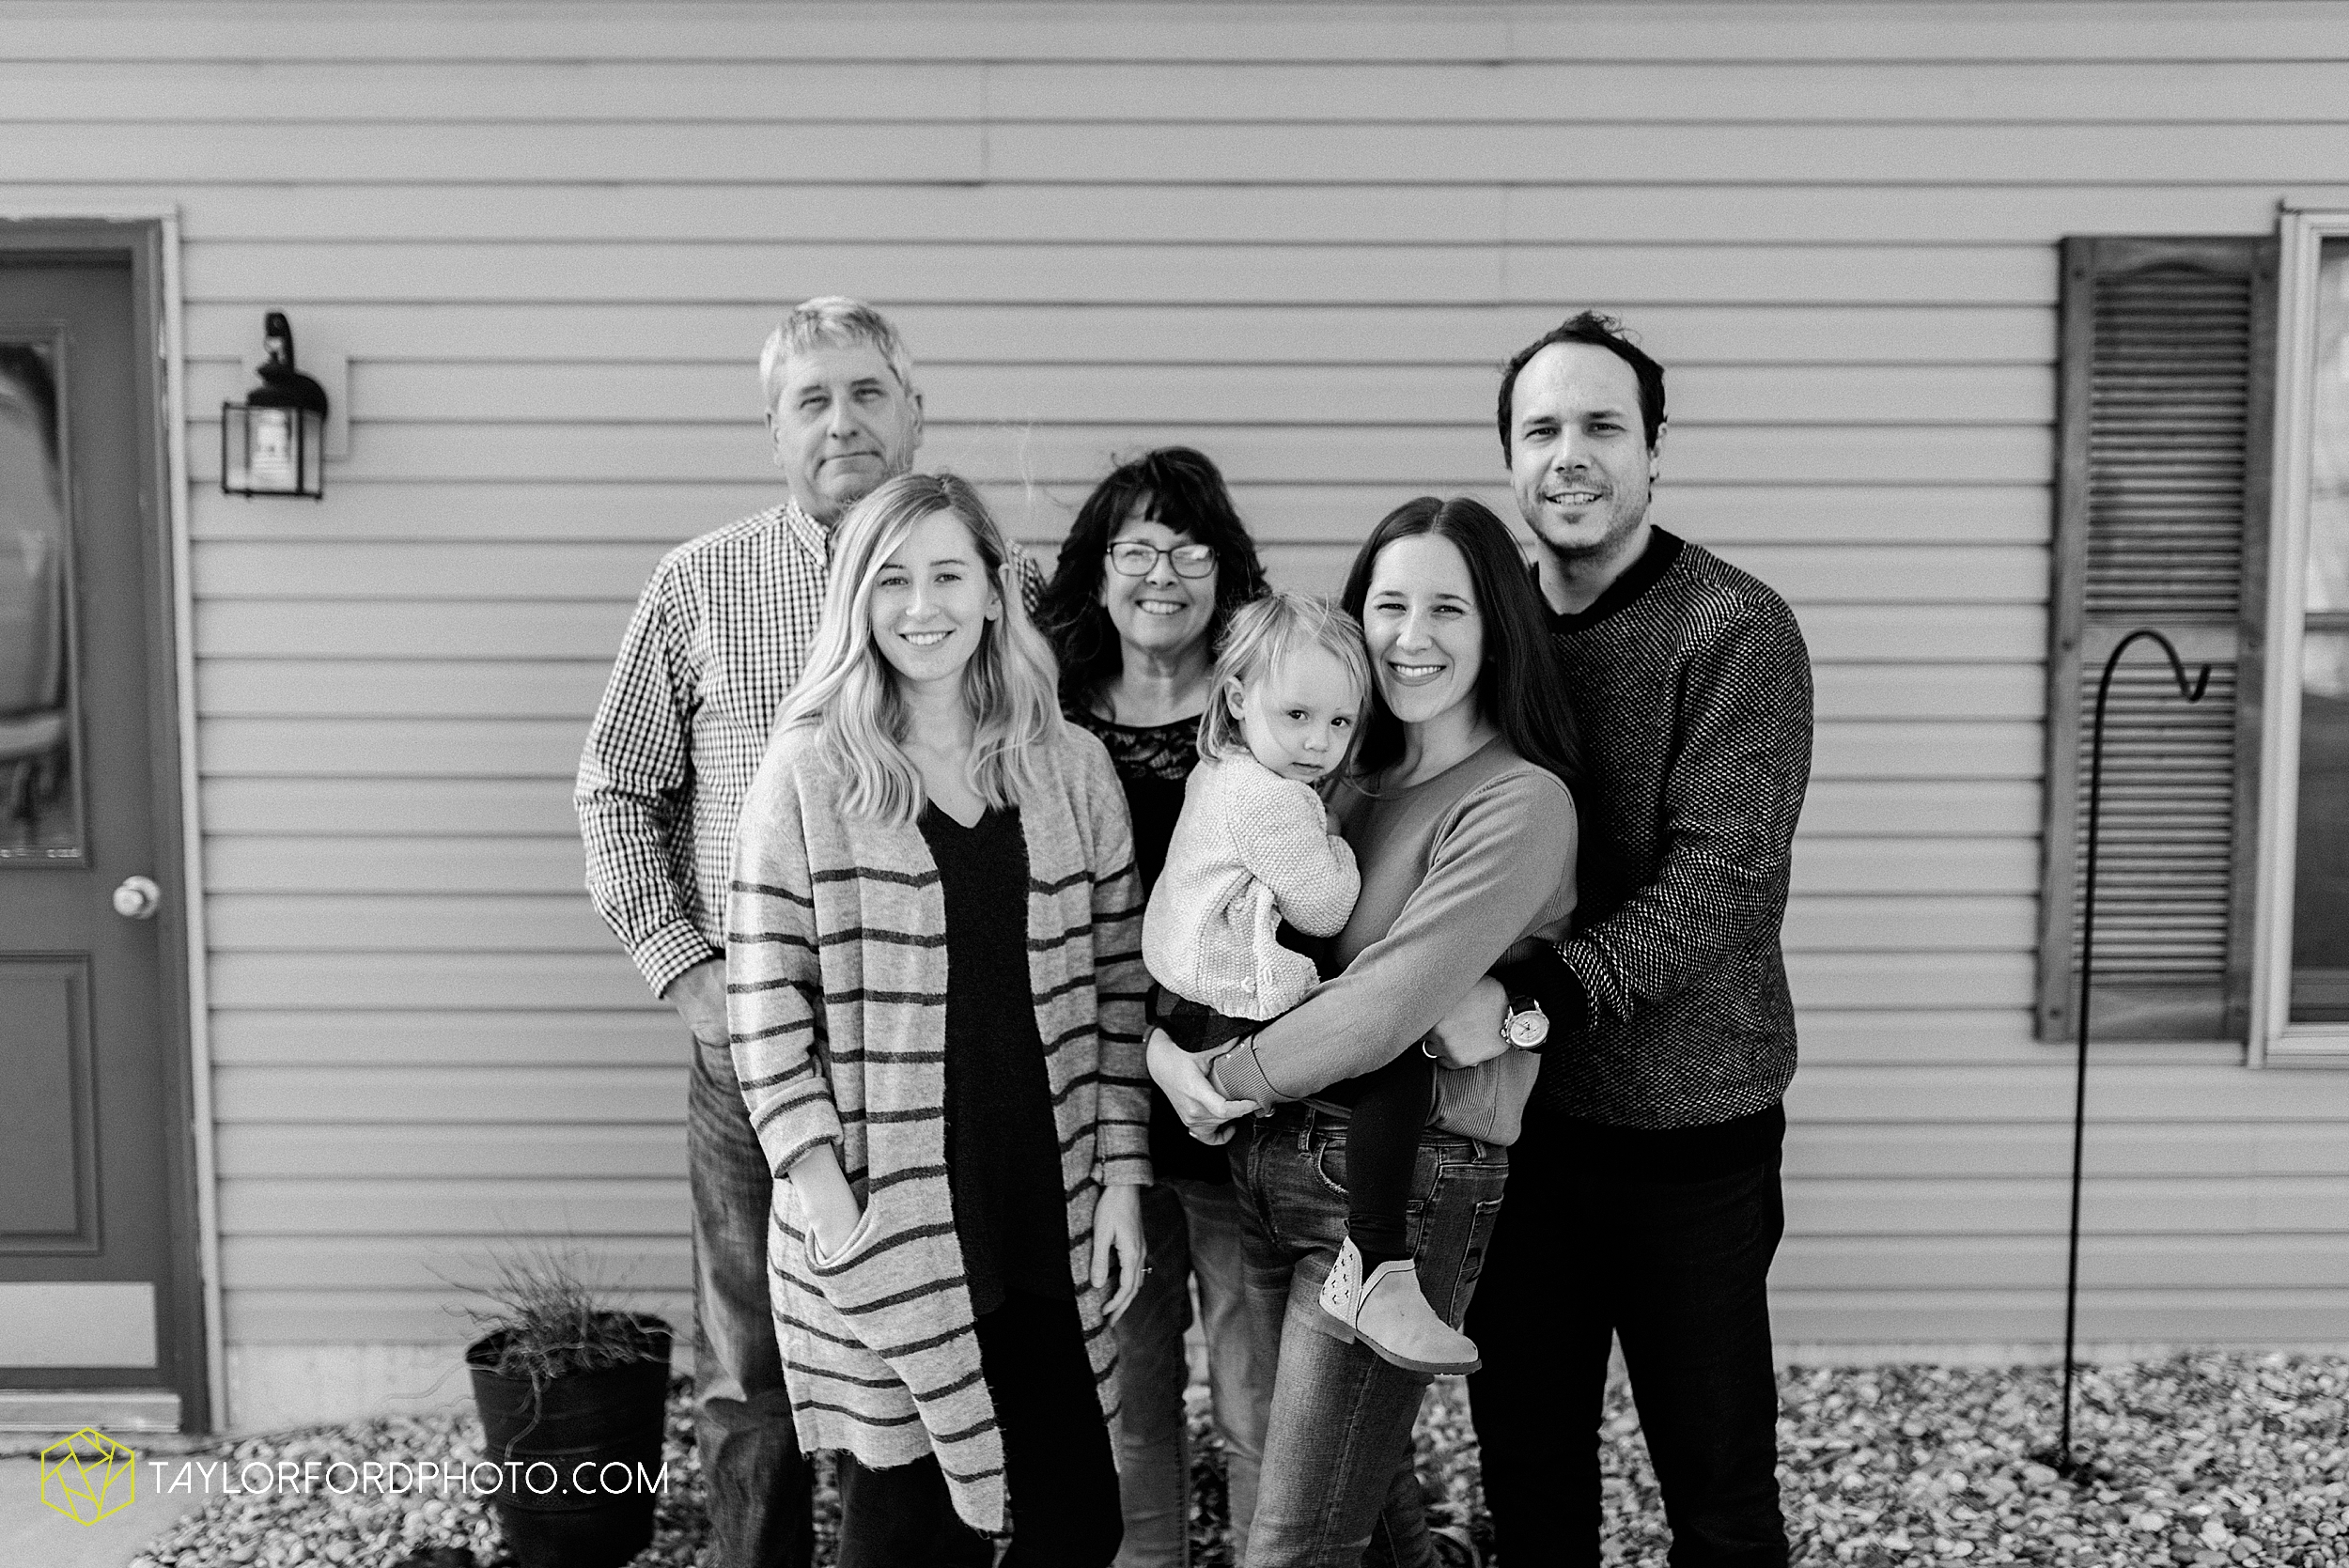 fortney-matthews-extended-family-van-wert-ohio-at-home-family-farm-photography-taylor-ford-hirschy-photographer_2026.jpg